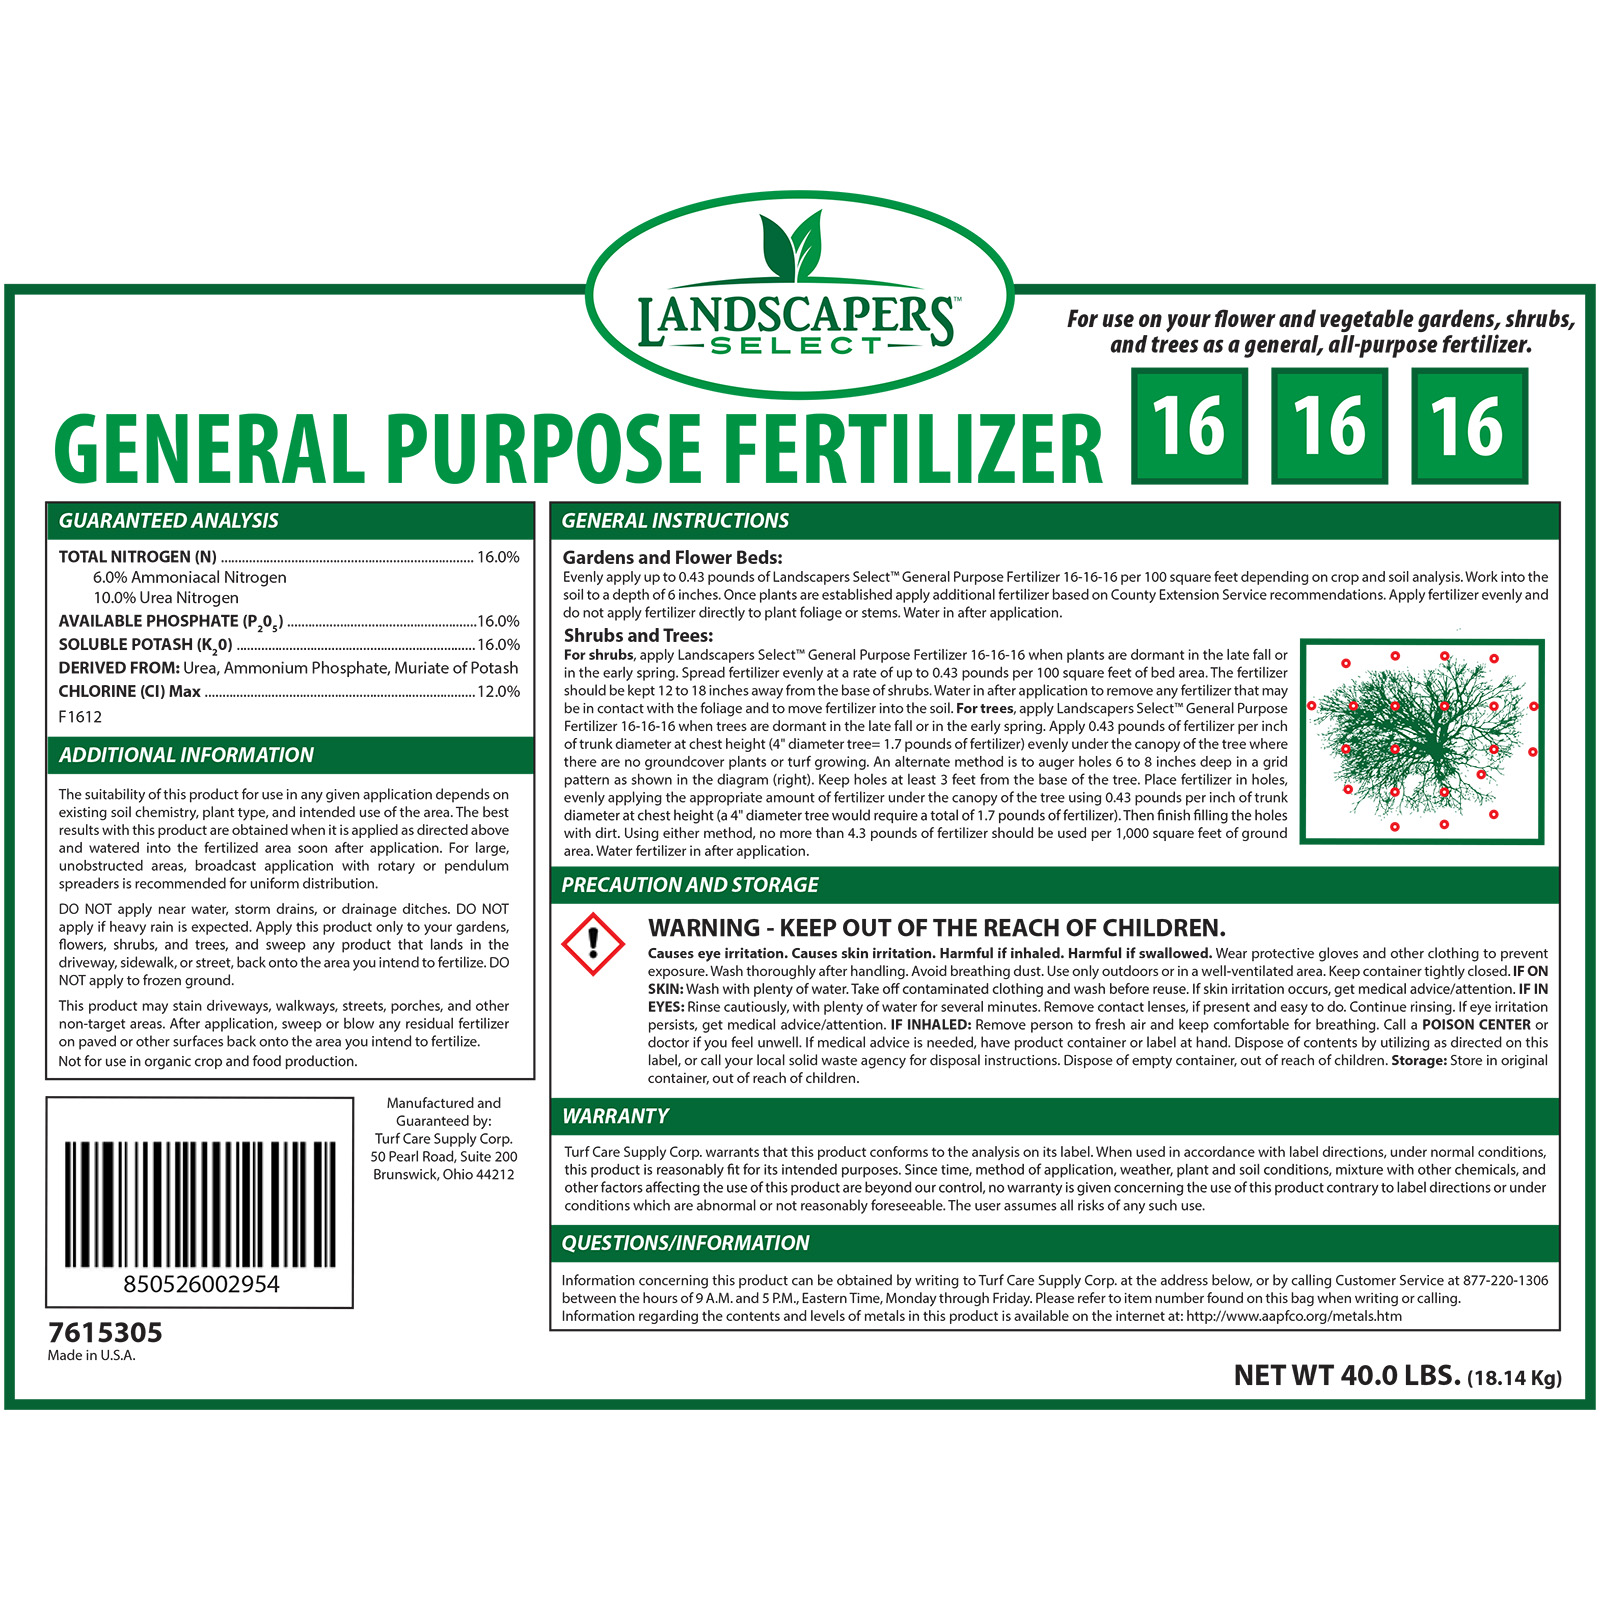 Murdoch's – Landscapers Select - 16-16-16 General Purpose Fertilizer